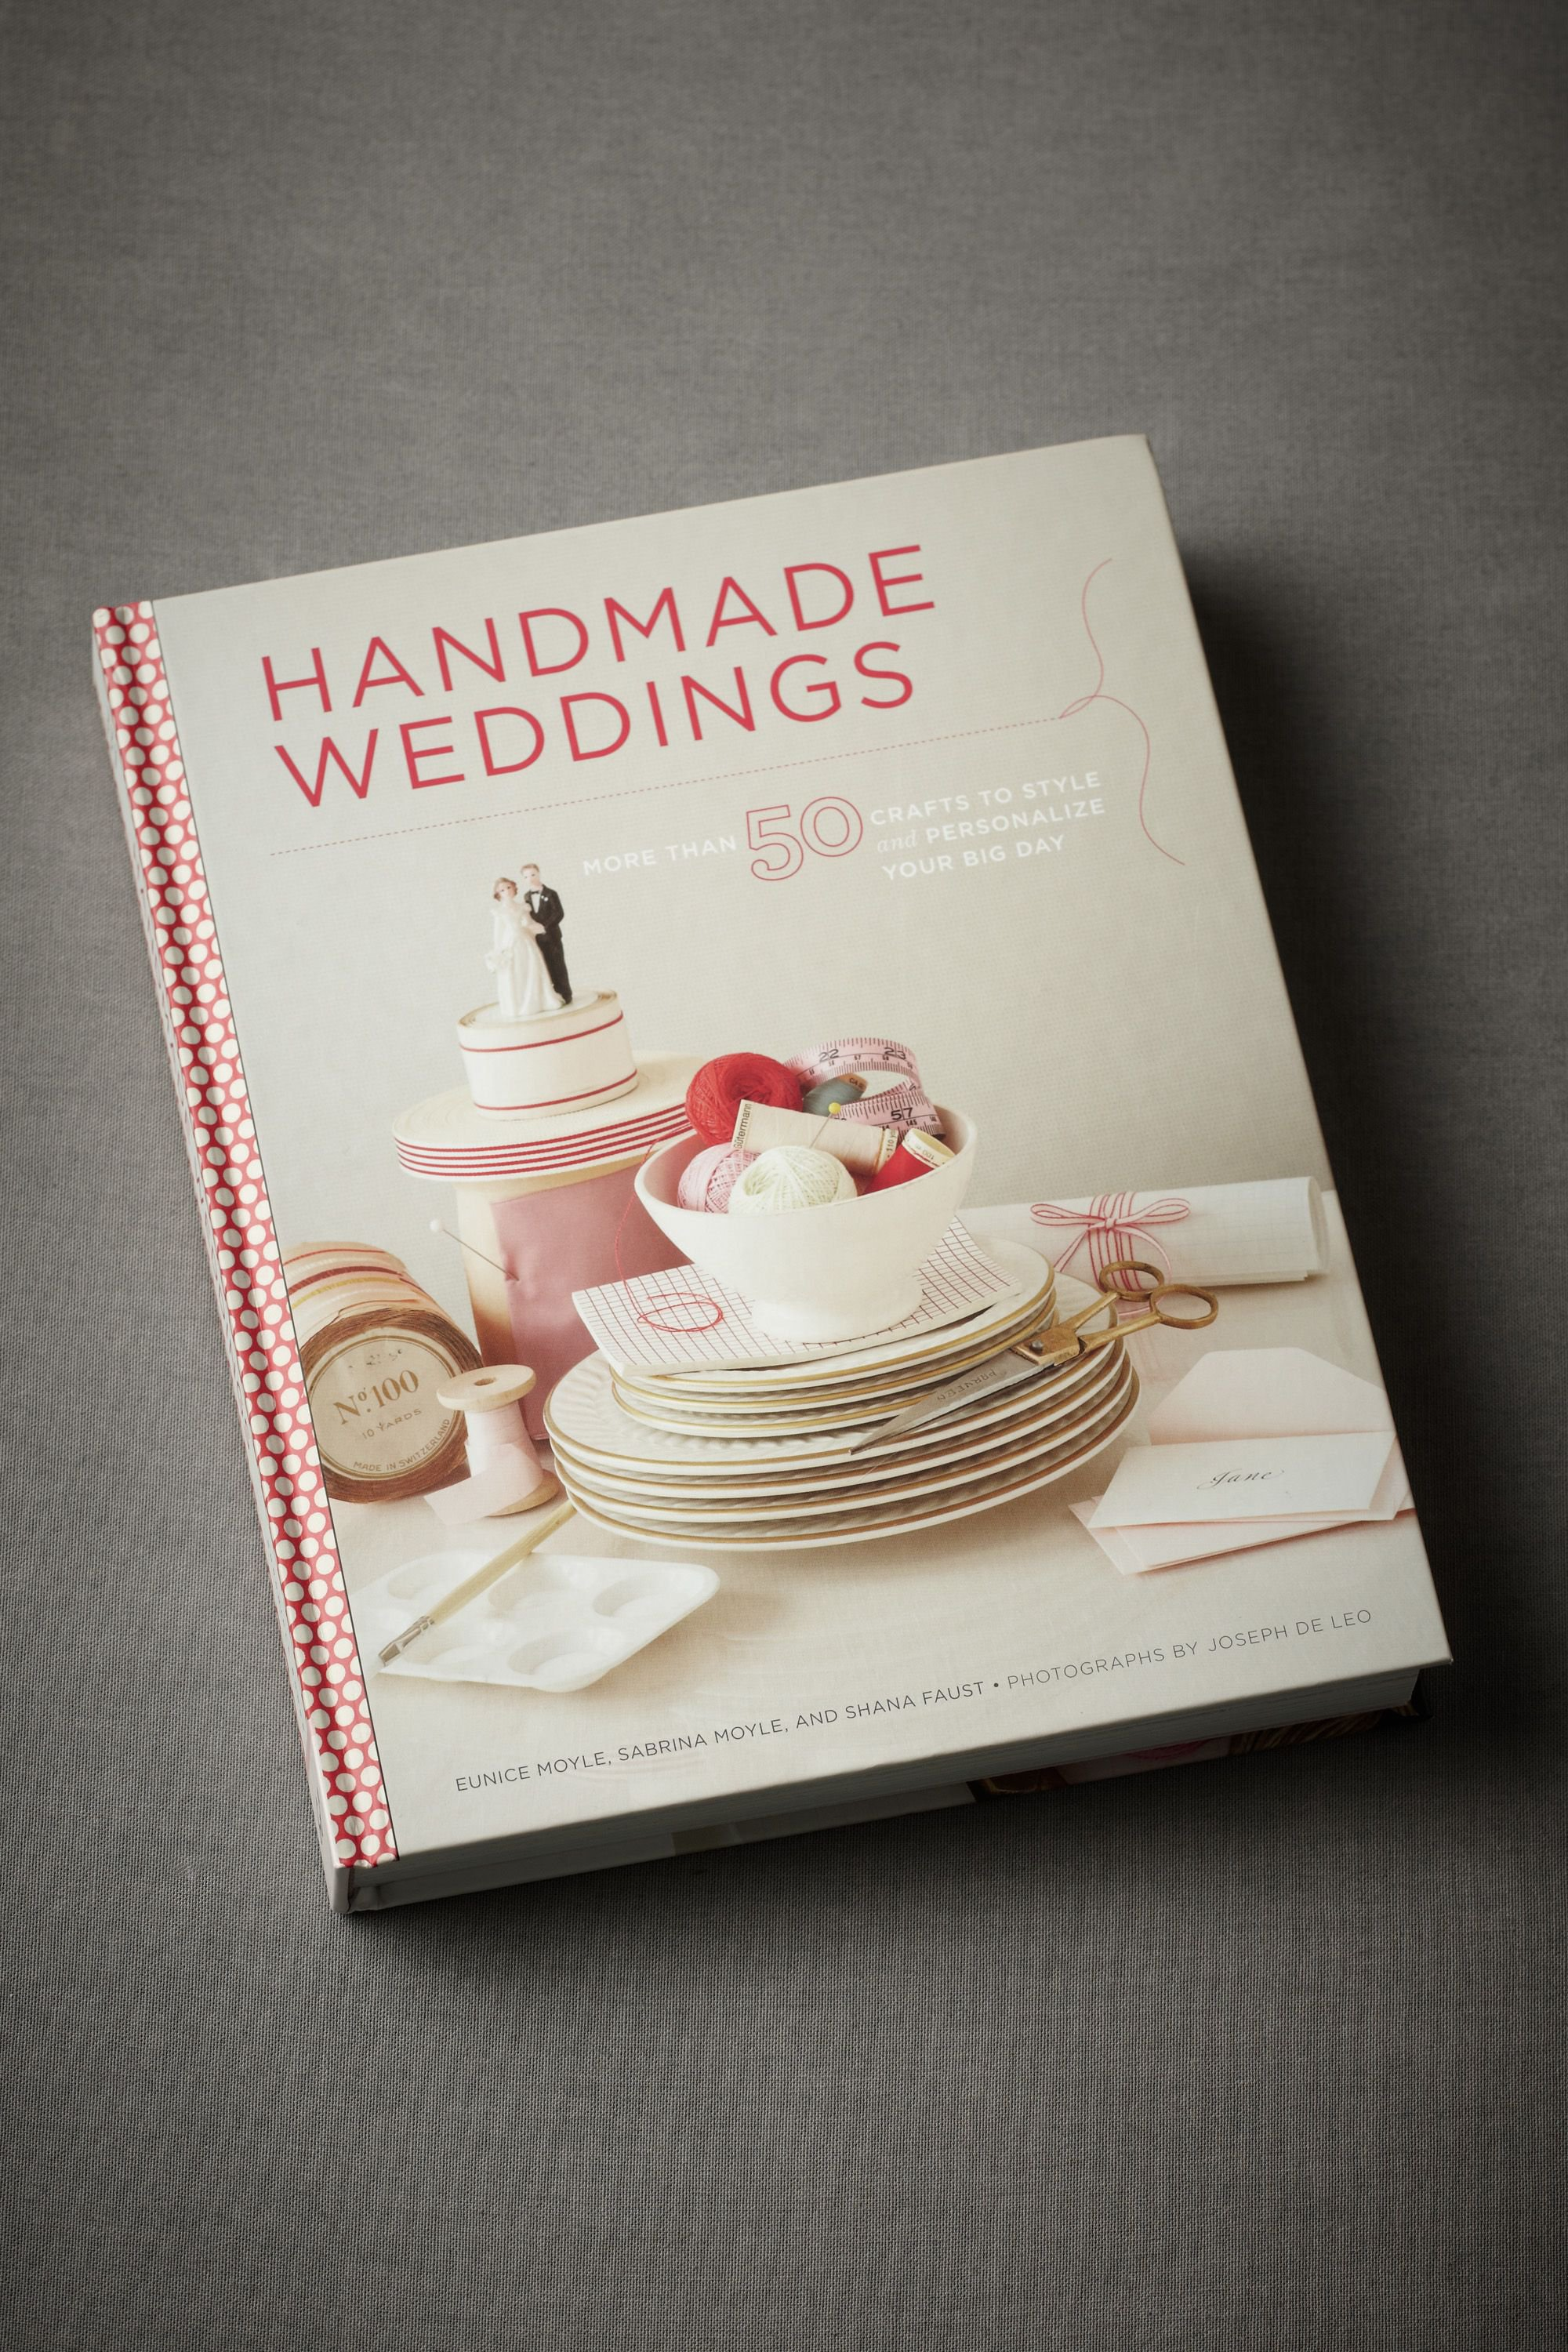 Handmade Weddings: 50 Crafts to Style and Personalize Your Big Day in SHOP New at BHLDN